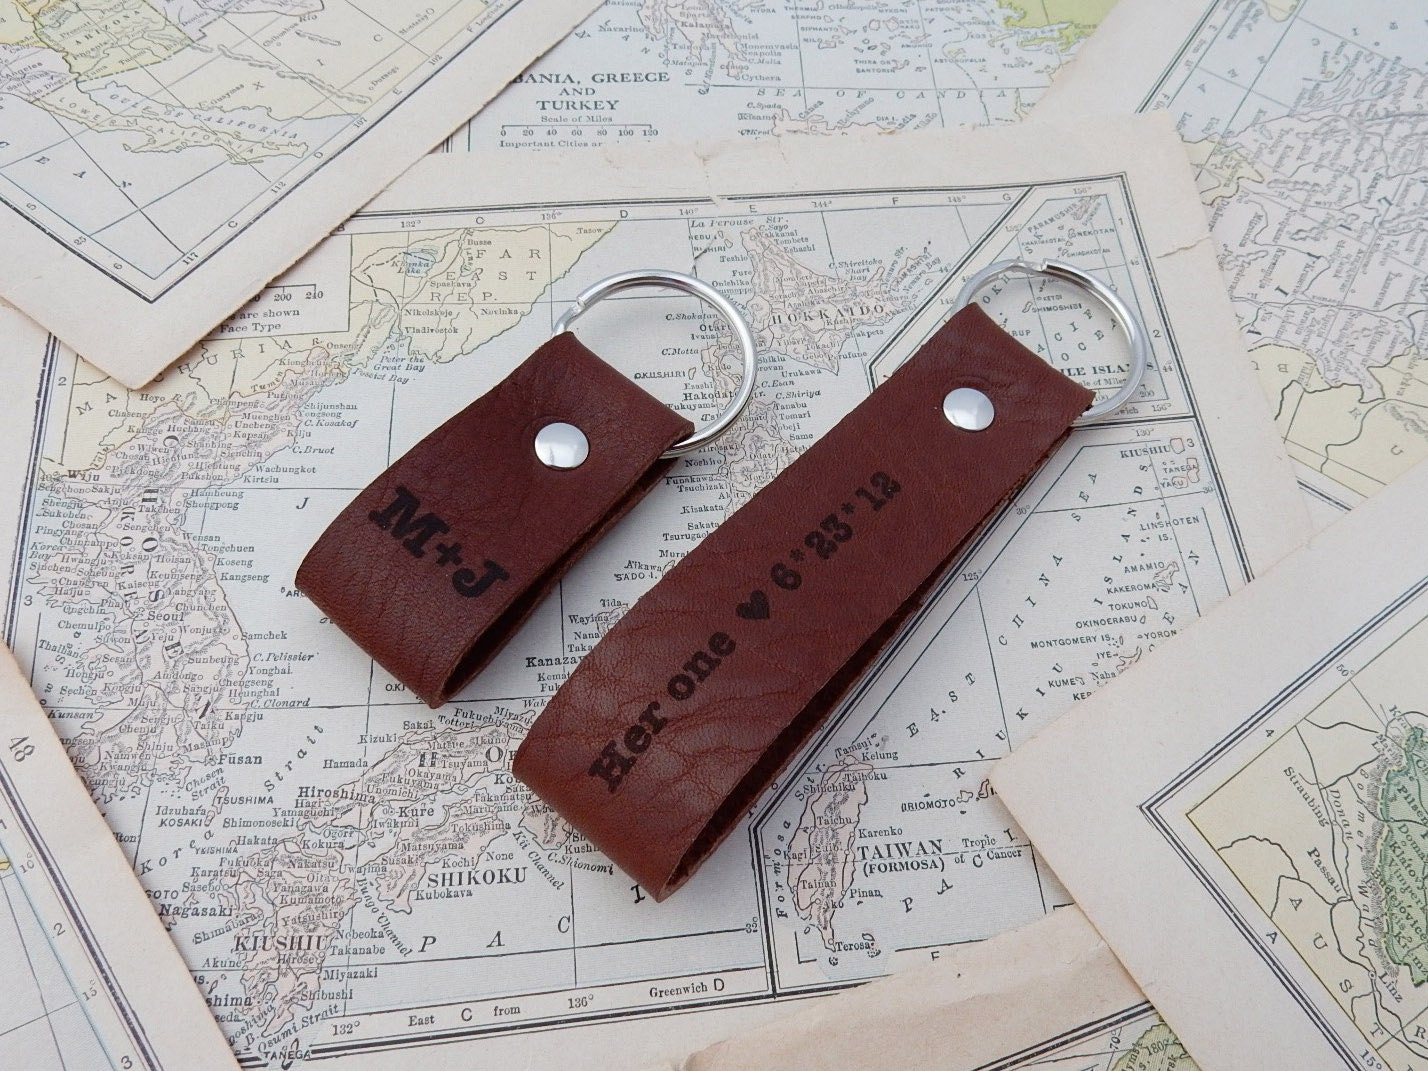 9th Wedding Anniversary Traditional Gift: 9th Anniversary Gift Leather Keychain Couples Gift Set